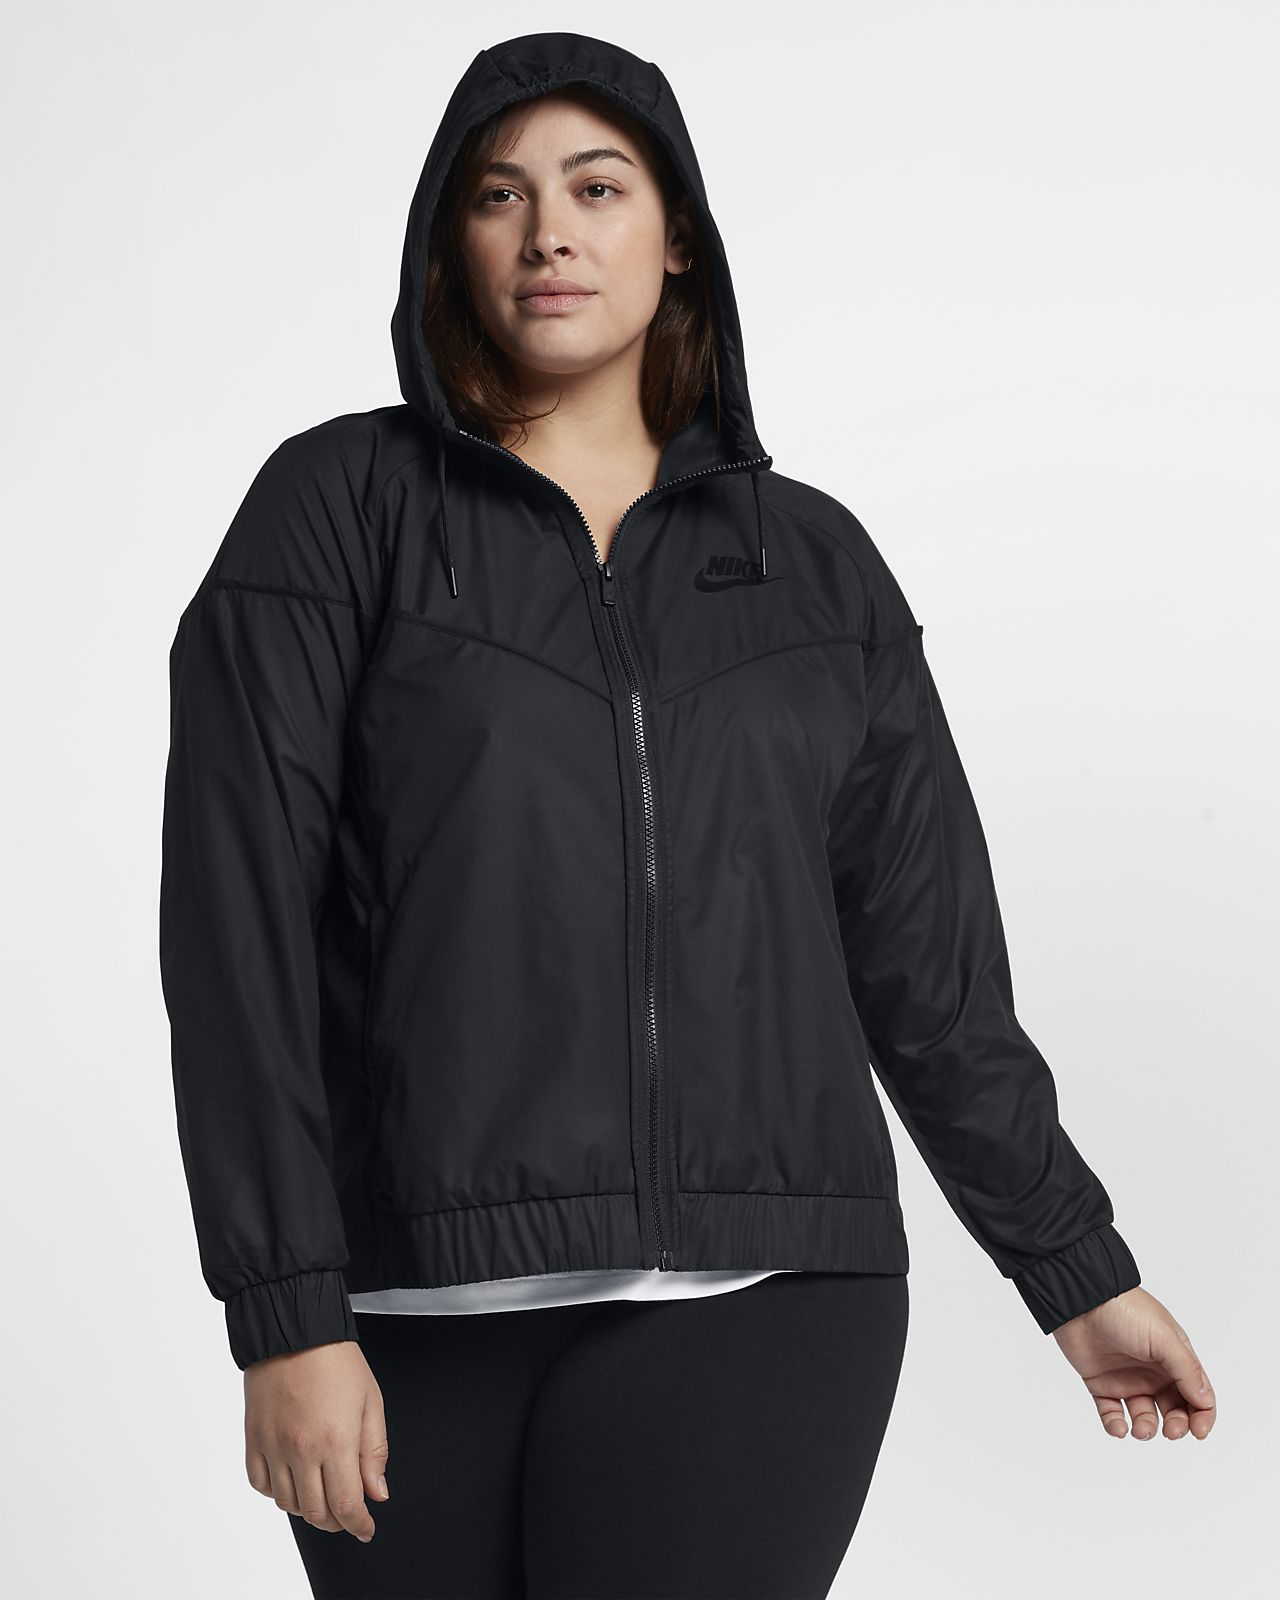 6265feb8130 Nike Sportswear Windrunner (Plus Size) Women s Jacket. Nike.com NZ